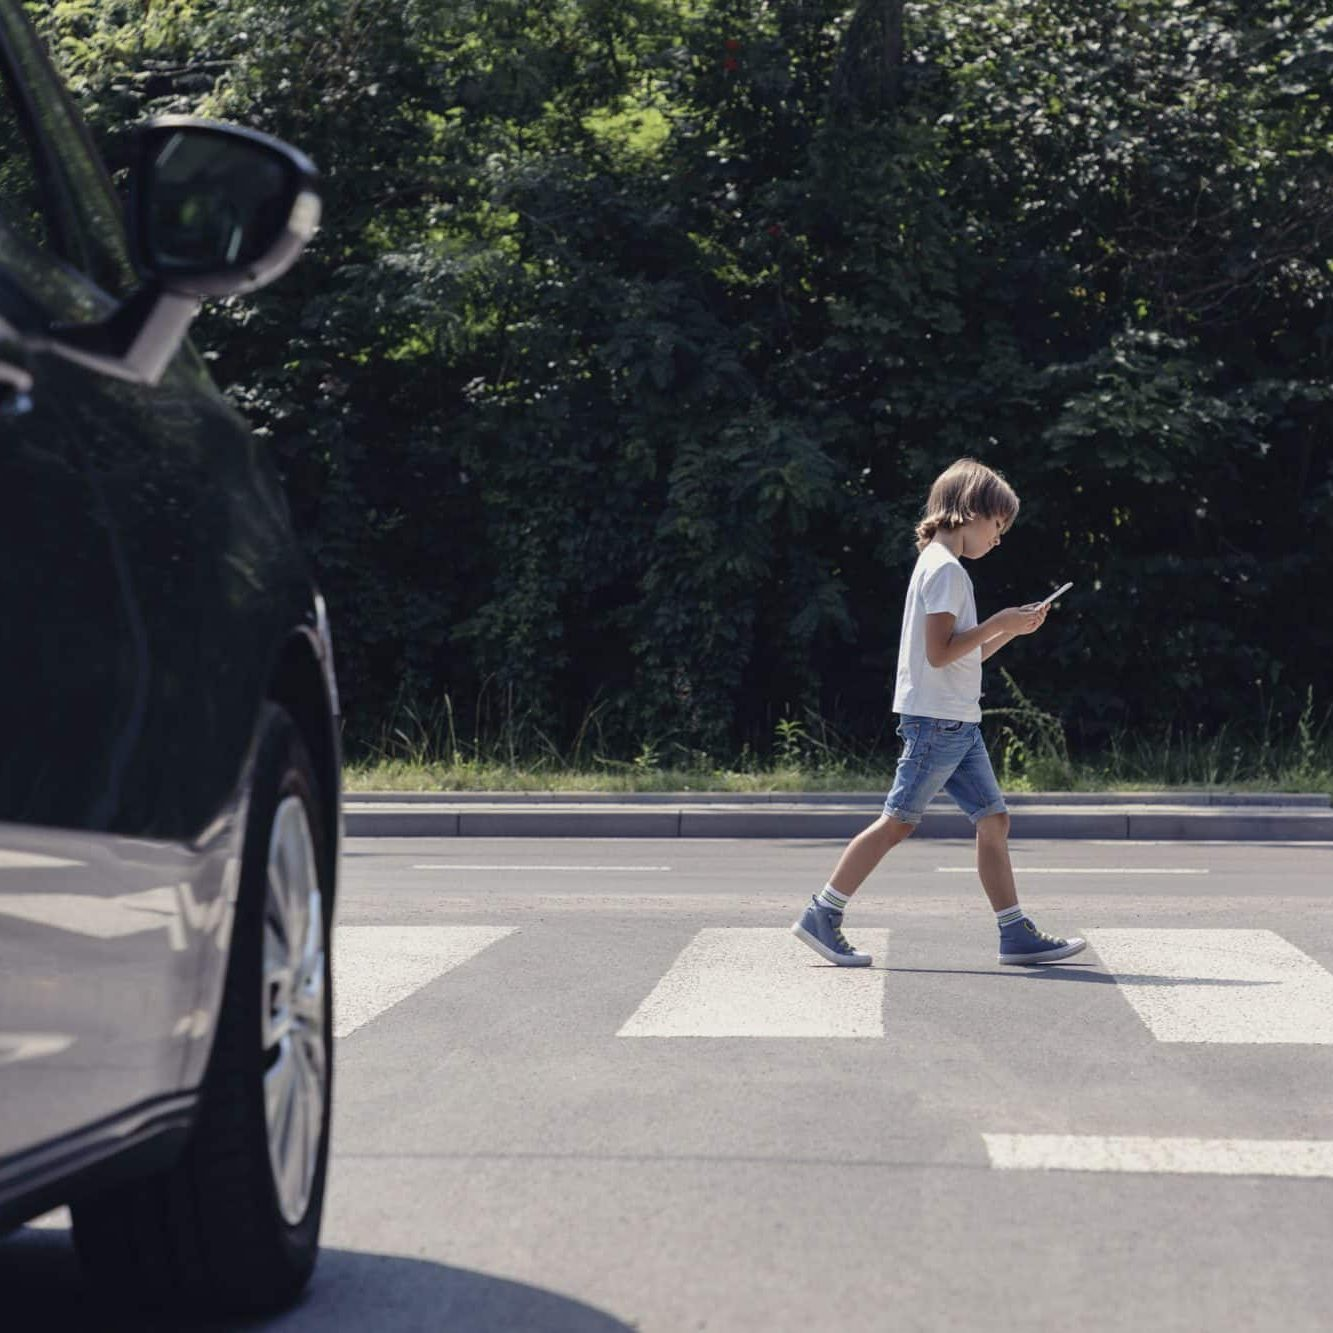 Child crossing the street while looking at smart phone